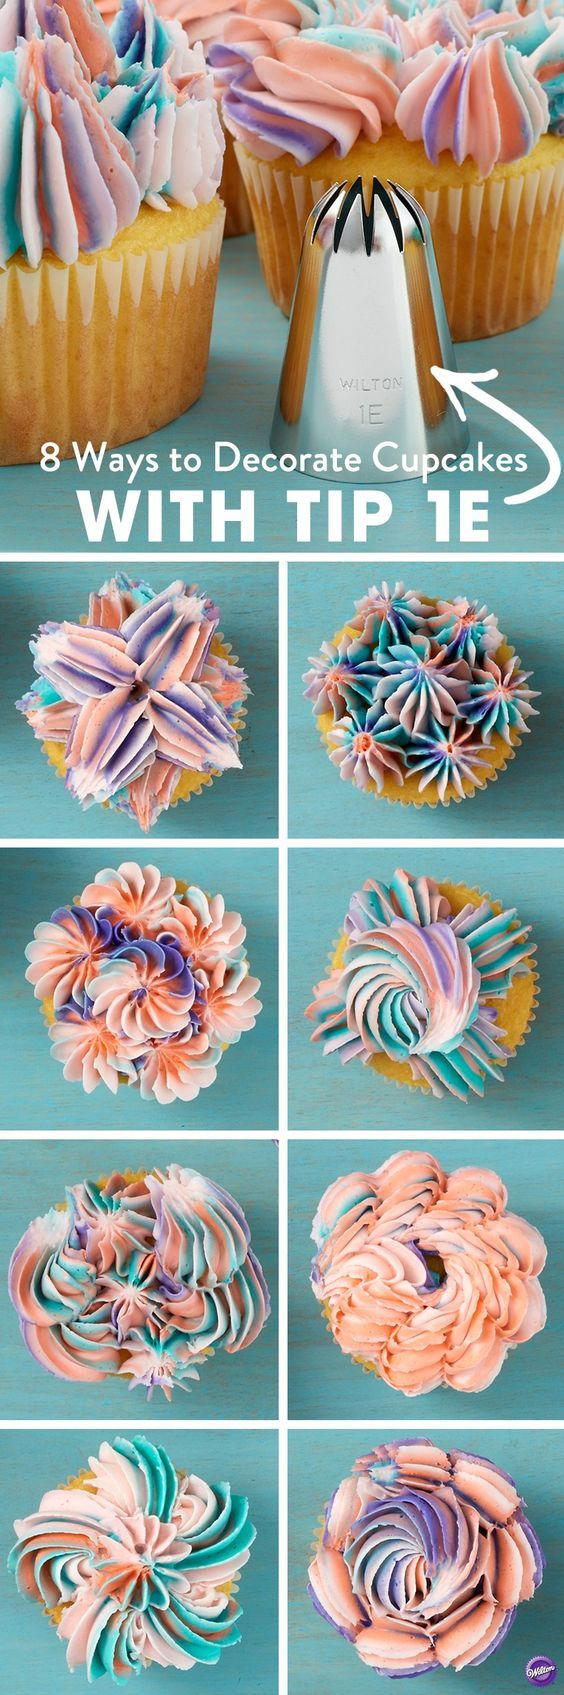 8 Ways to Decorate Cupcakes Using Tip 1E #cakedecoratingvideos